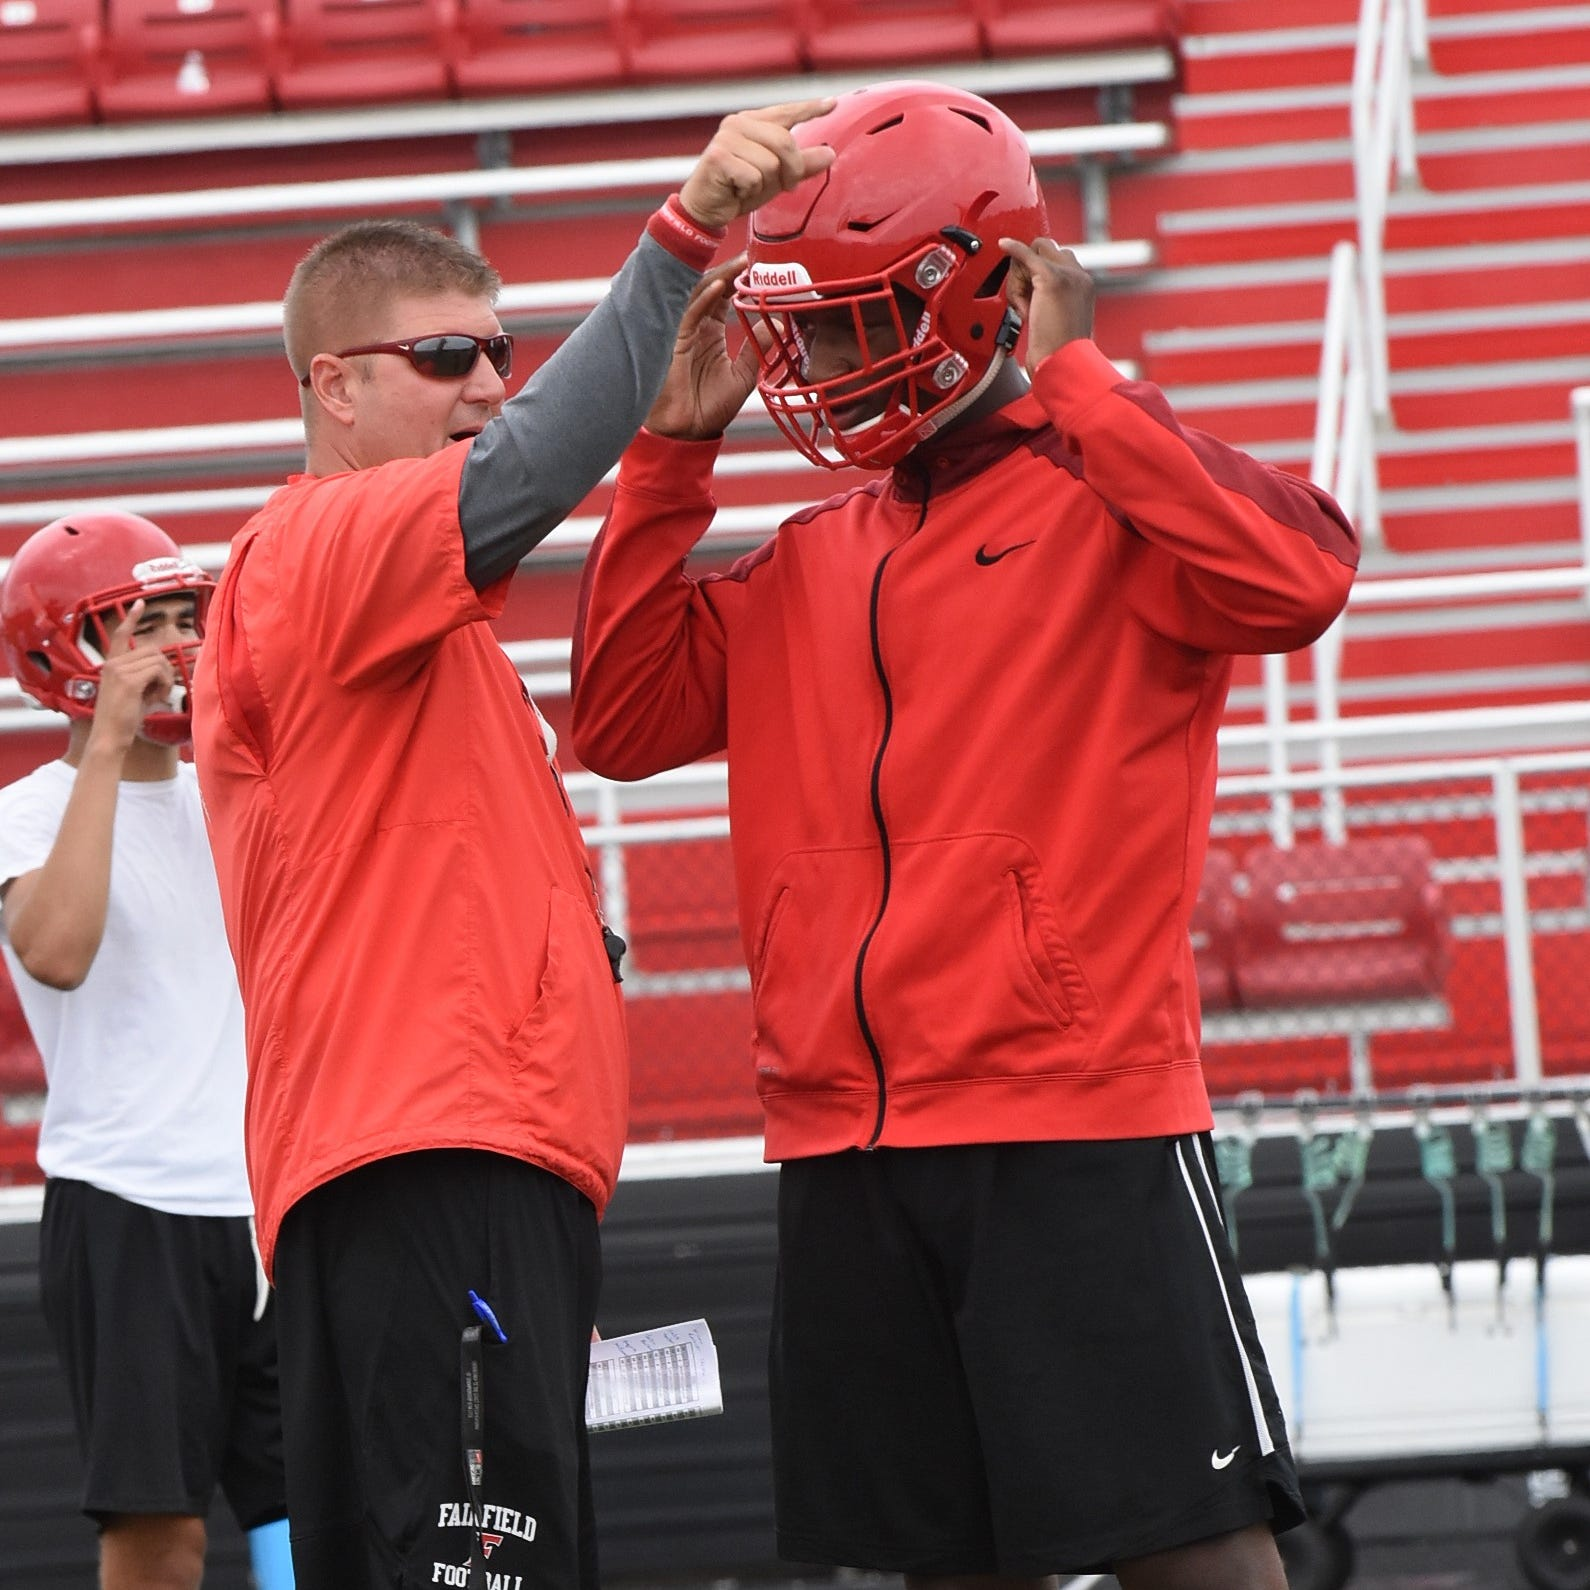 Fairfield Head Football Coach Jason Krause points out directions to his Quarterback Jeff Tyus during morning practice, July 30, 2018.